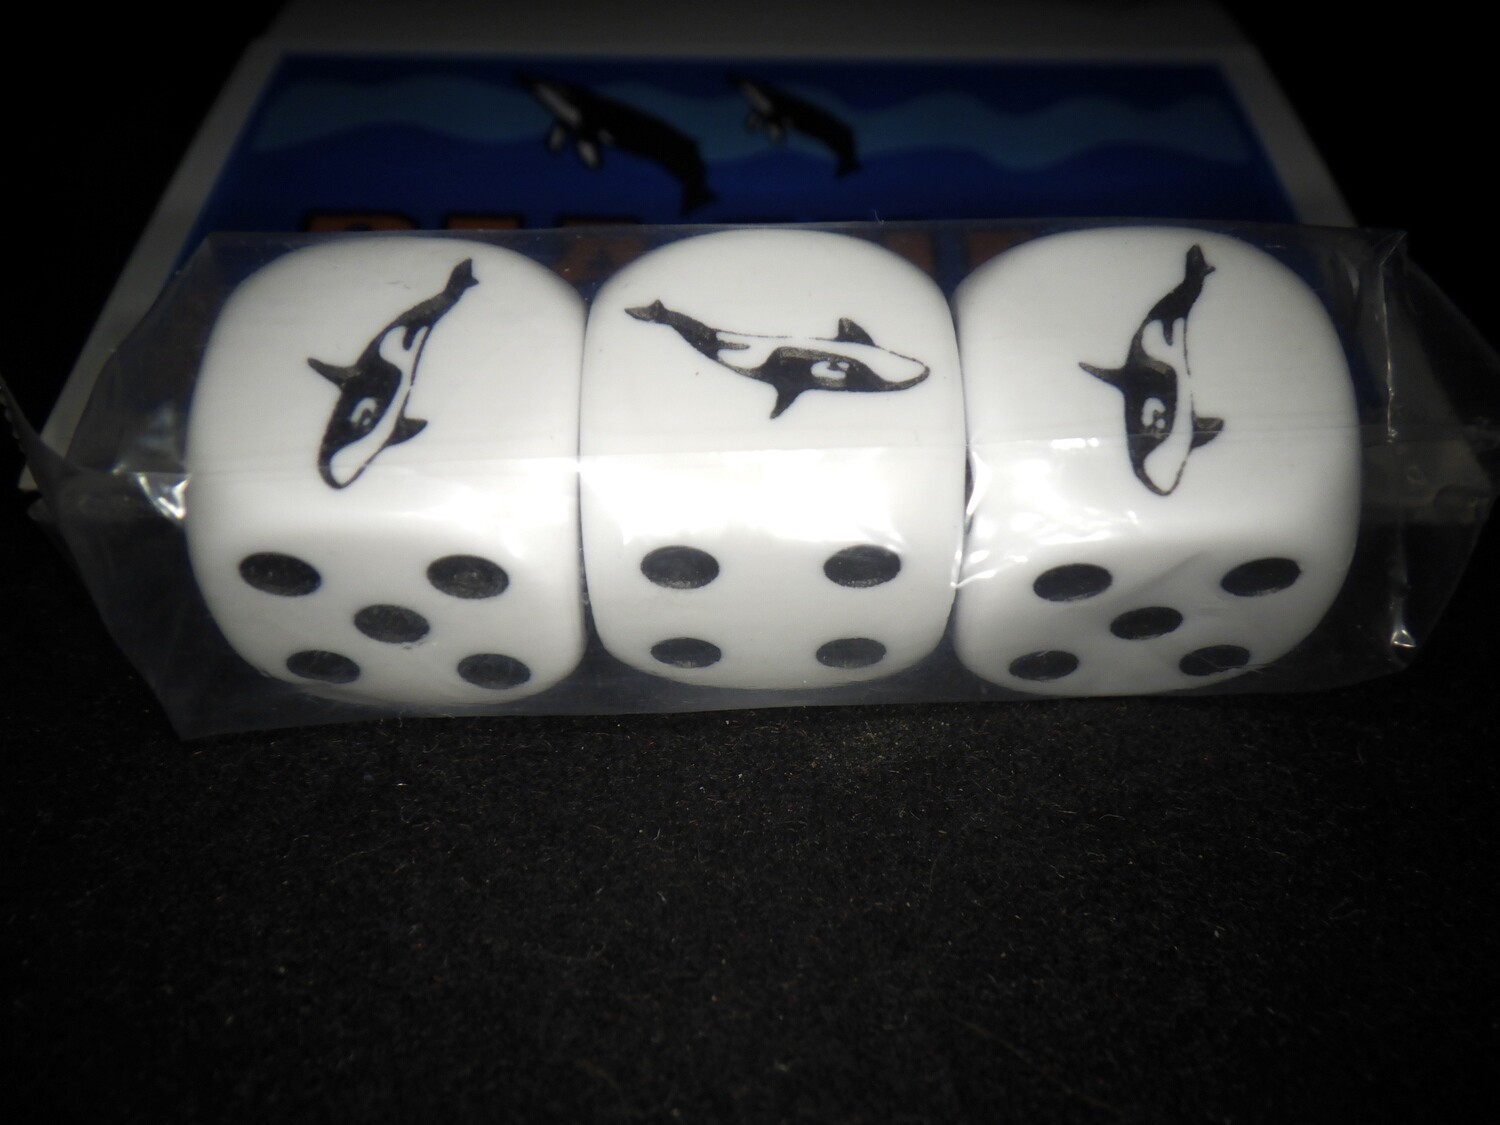 Beached Whale of a Dice Game - Instructions with 3 Whale Dice - 3D6 - Tabletop